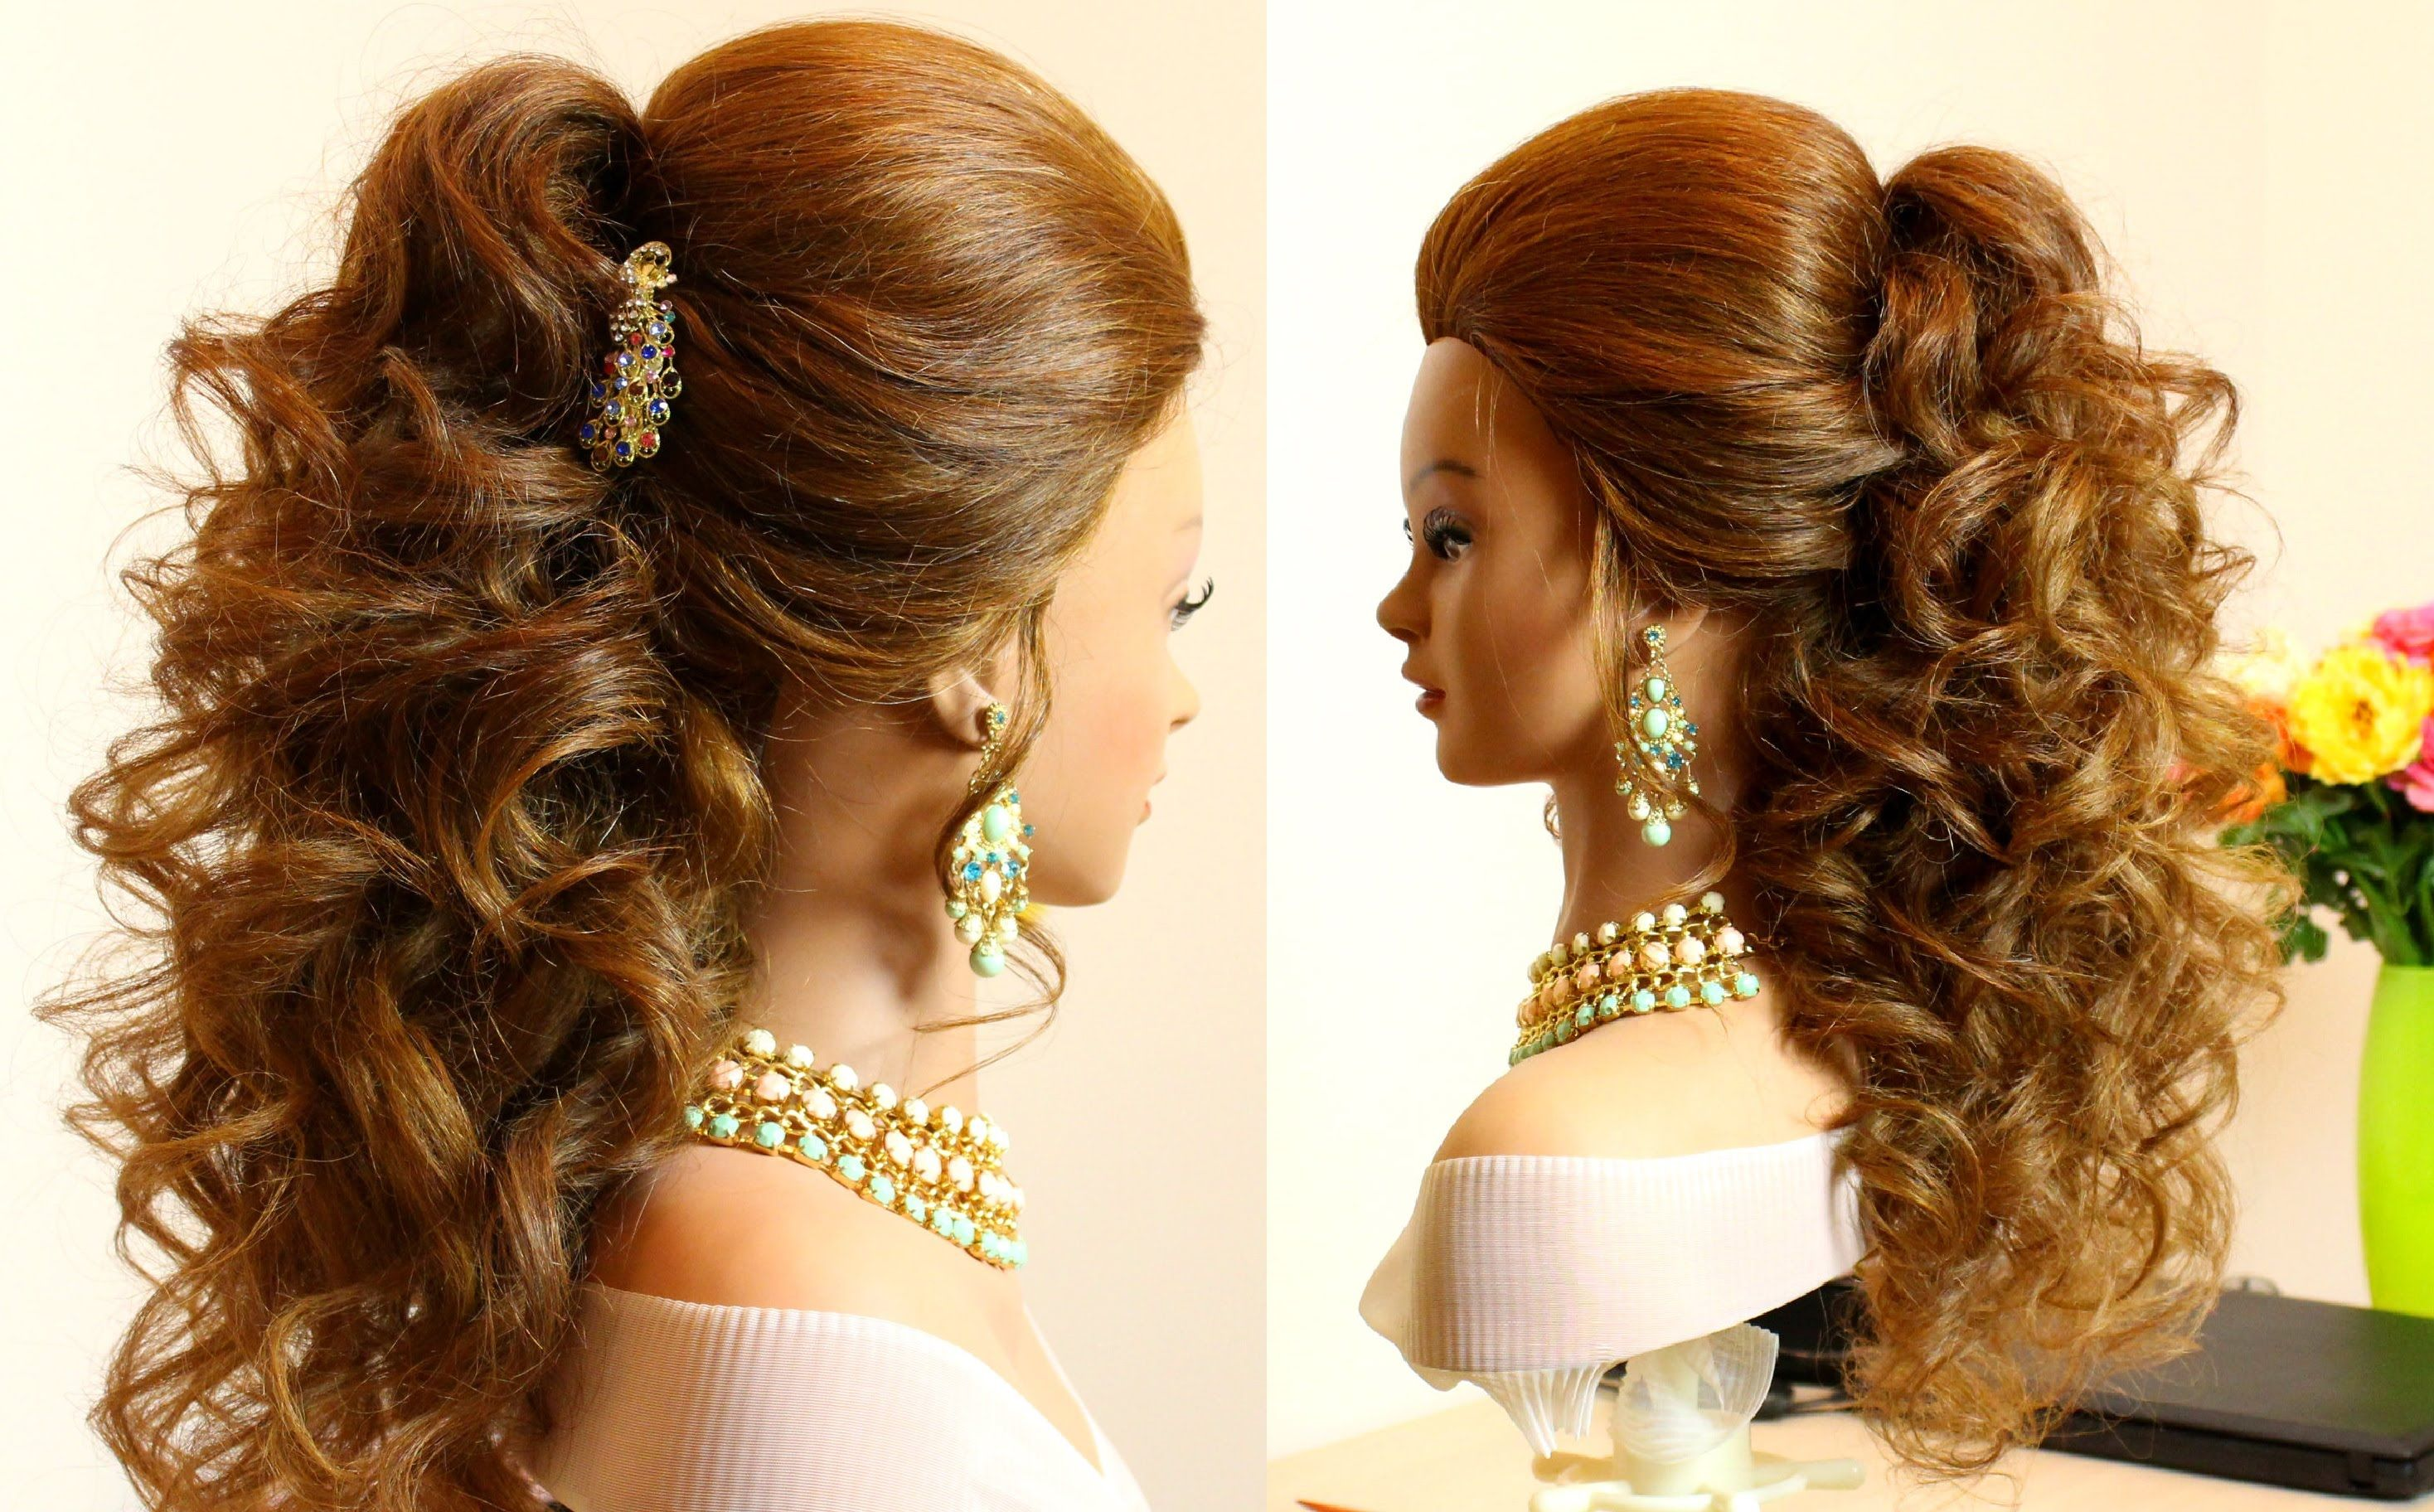 Hairstyles for Curly Hair for Indian Wedding